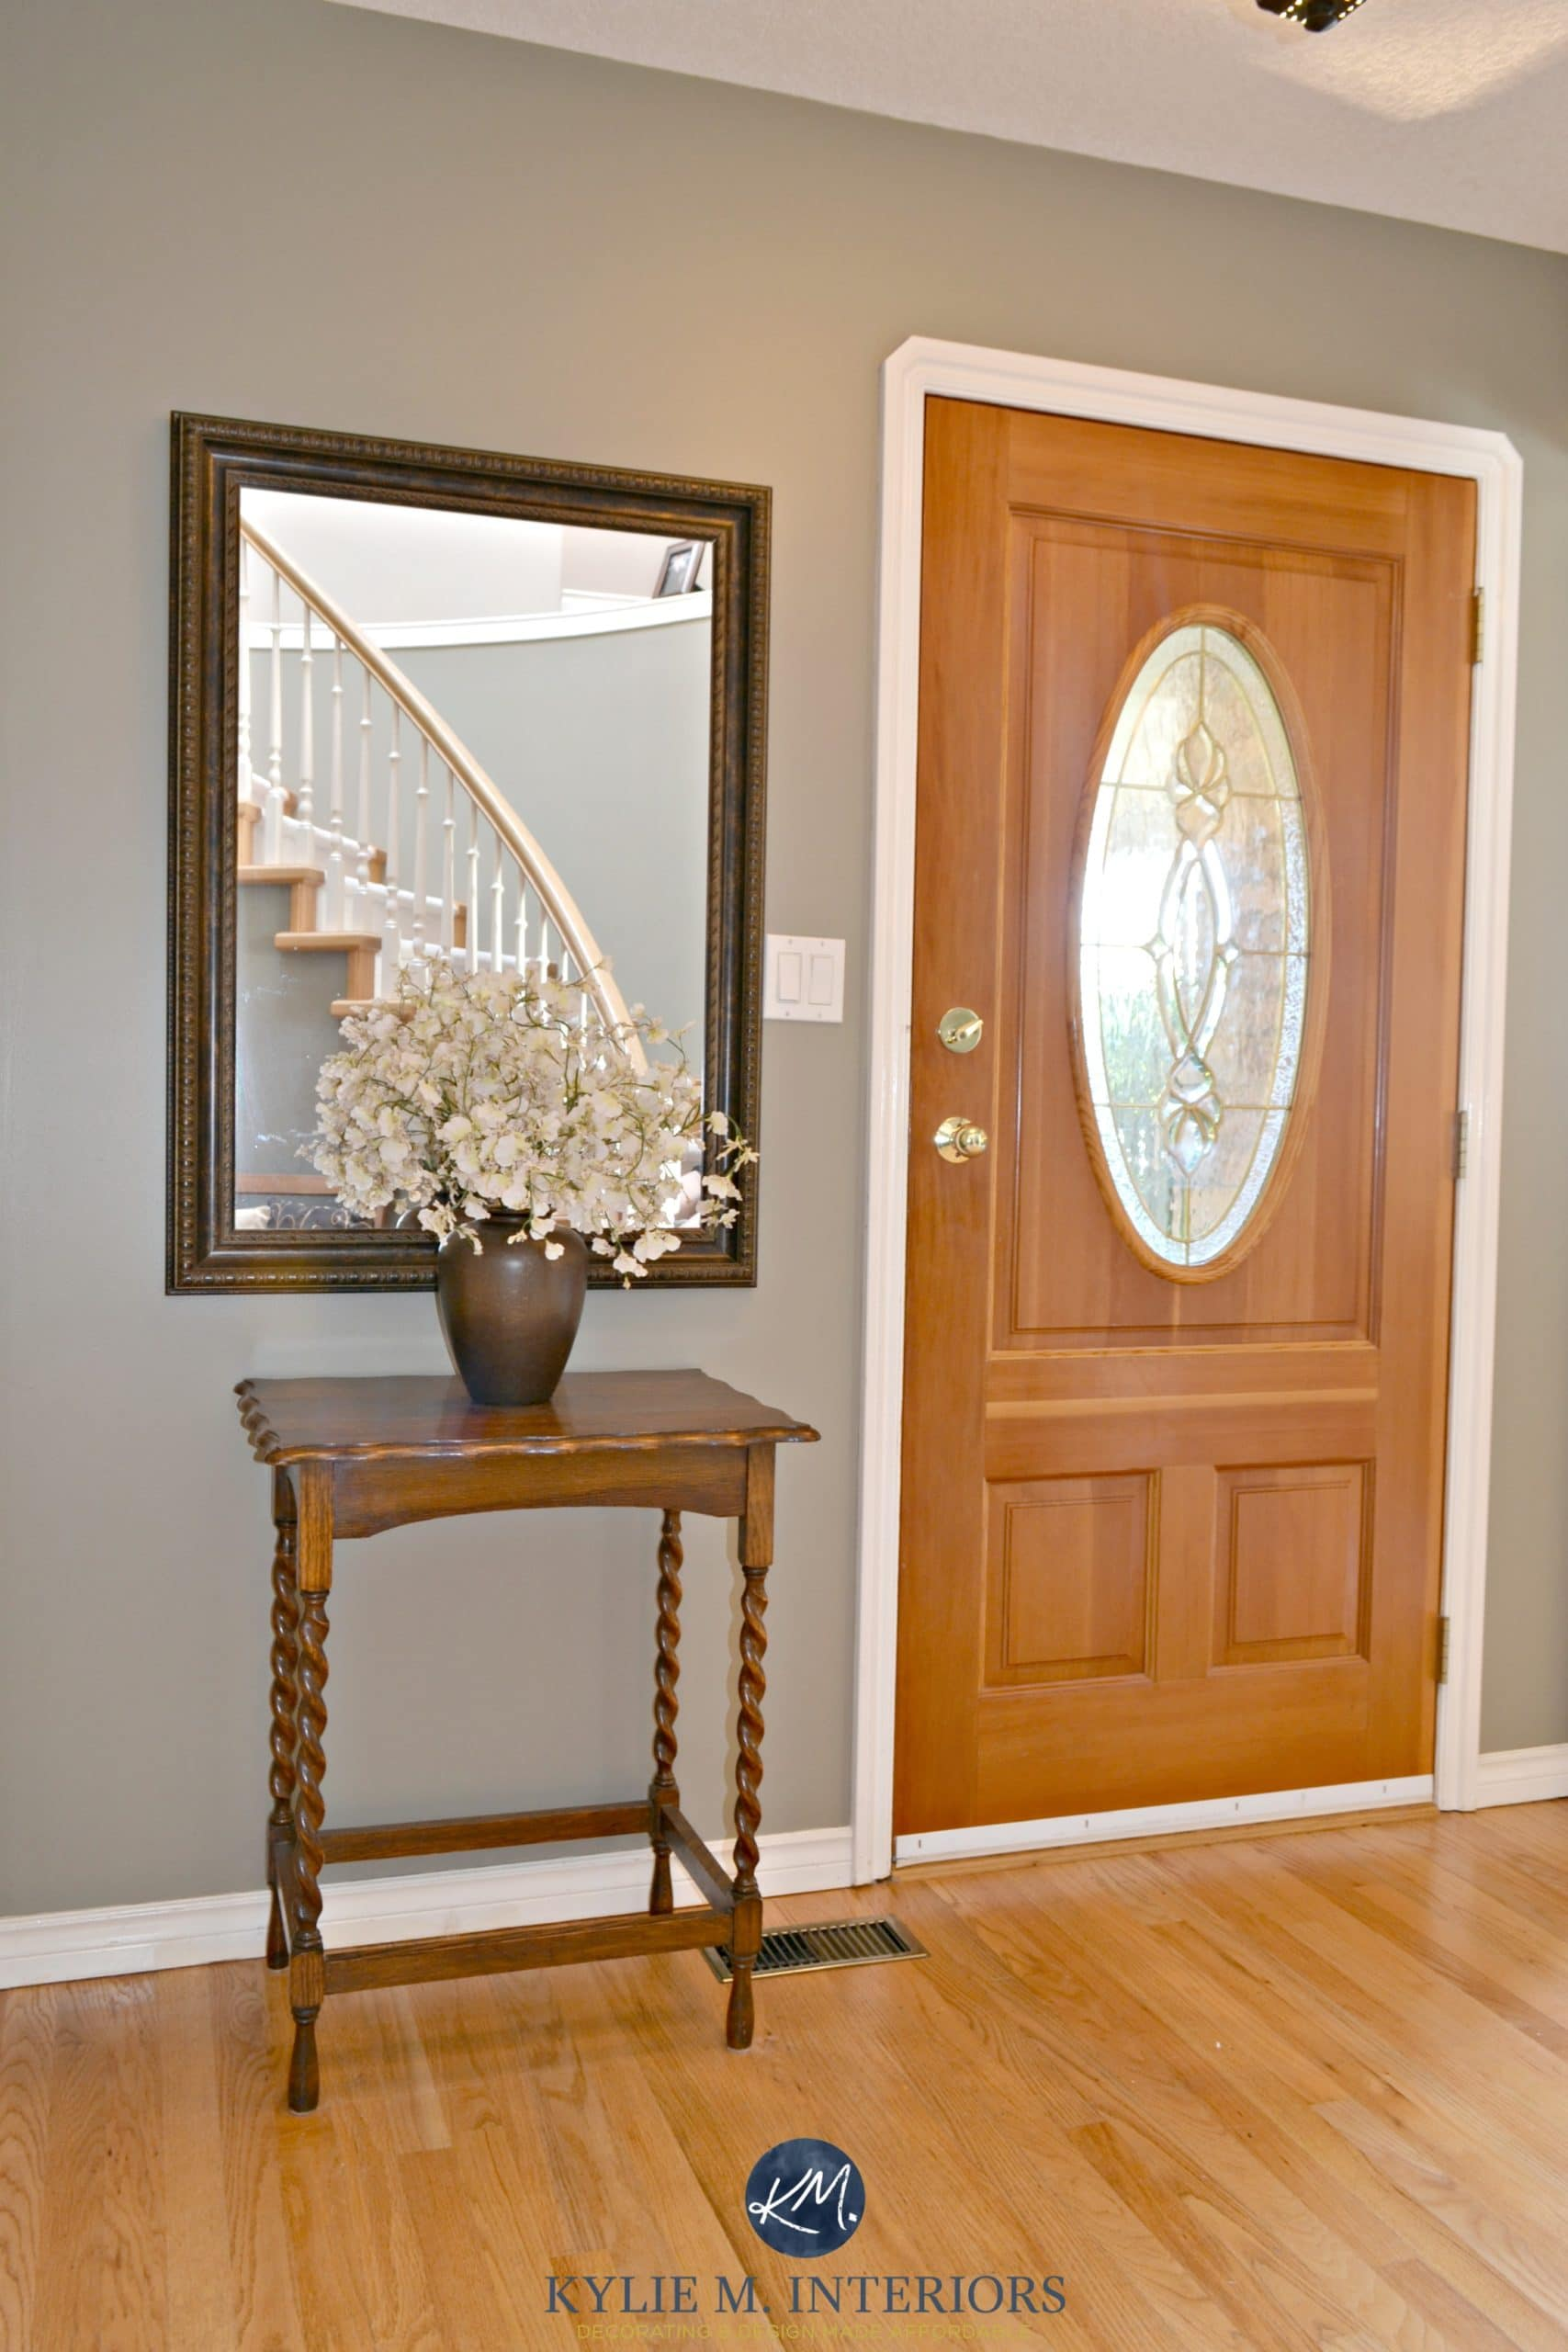 Benjamin Moore Sandy Hook Gray In Entryway With Orange Toned Oak Floor And  Fir Front Door. Best Paint Colours For Wood. Kylie M Interiors E Design And  ...